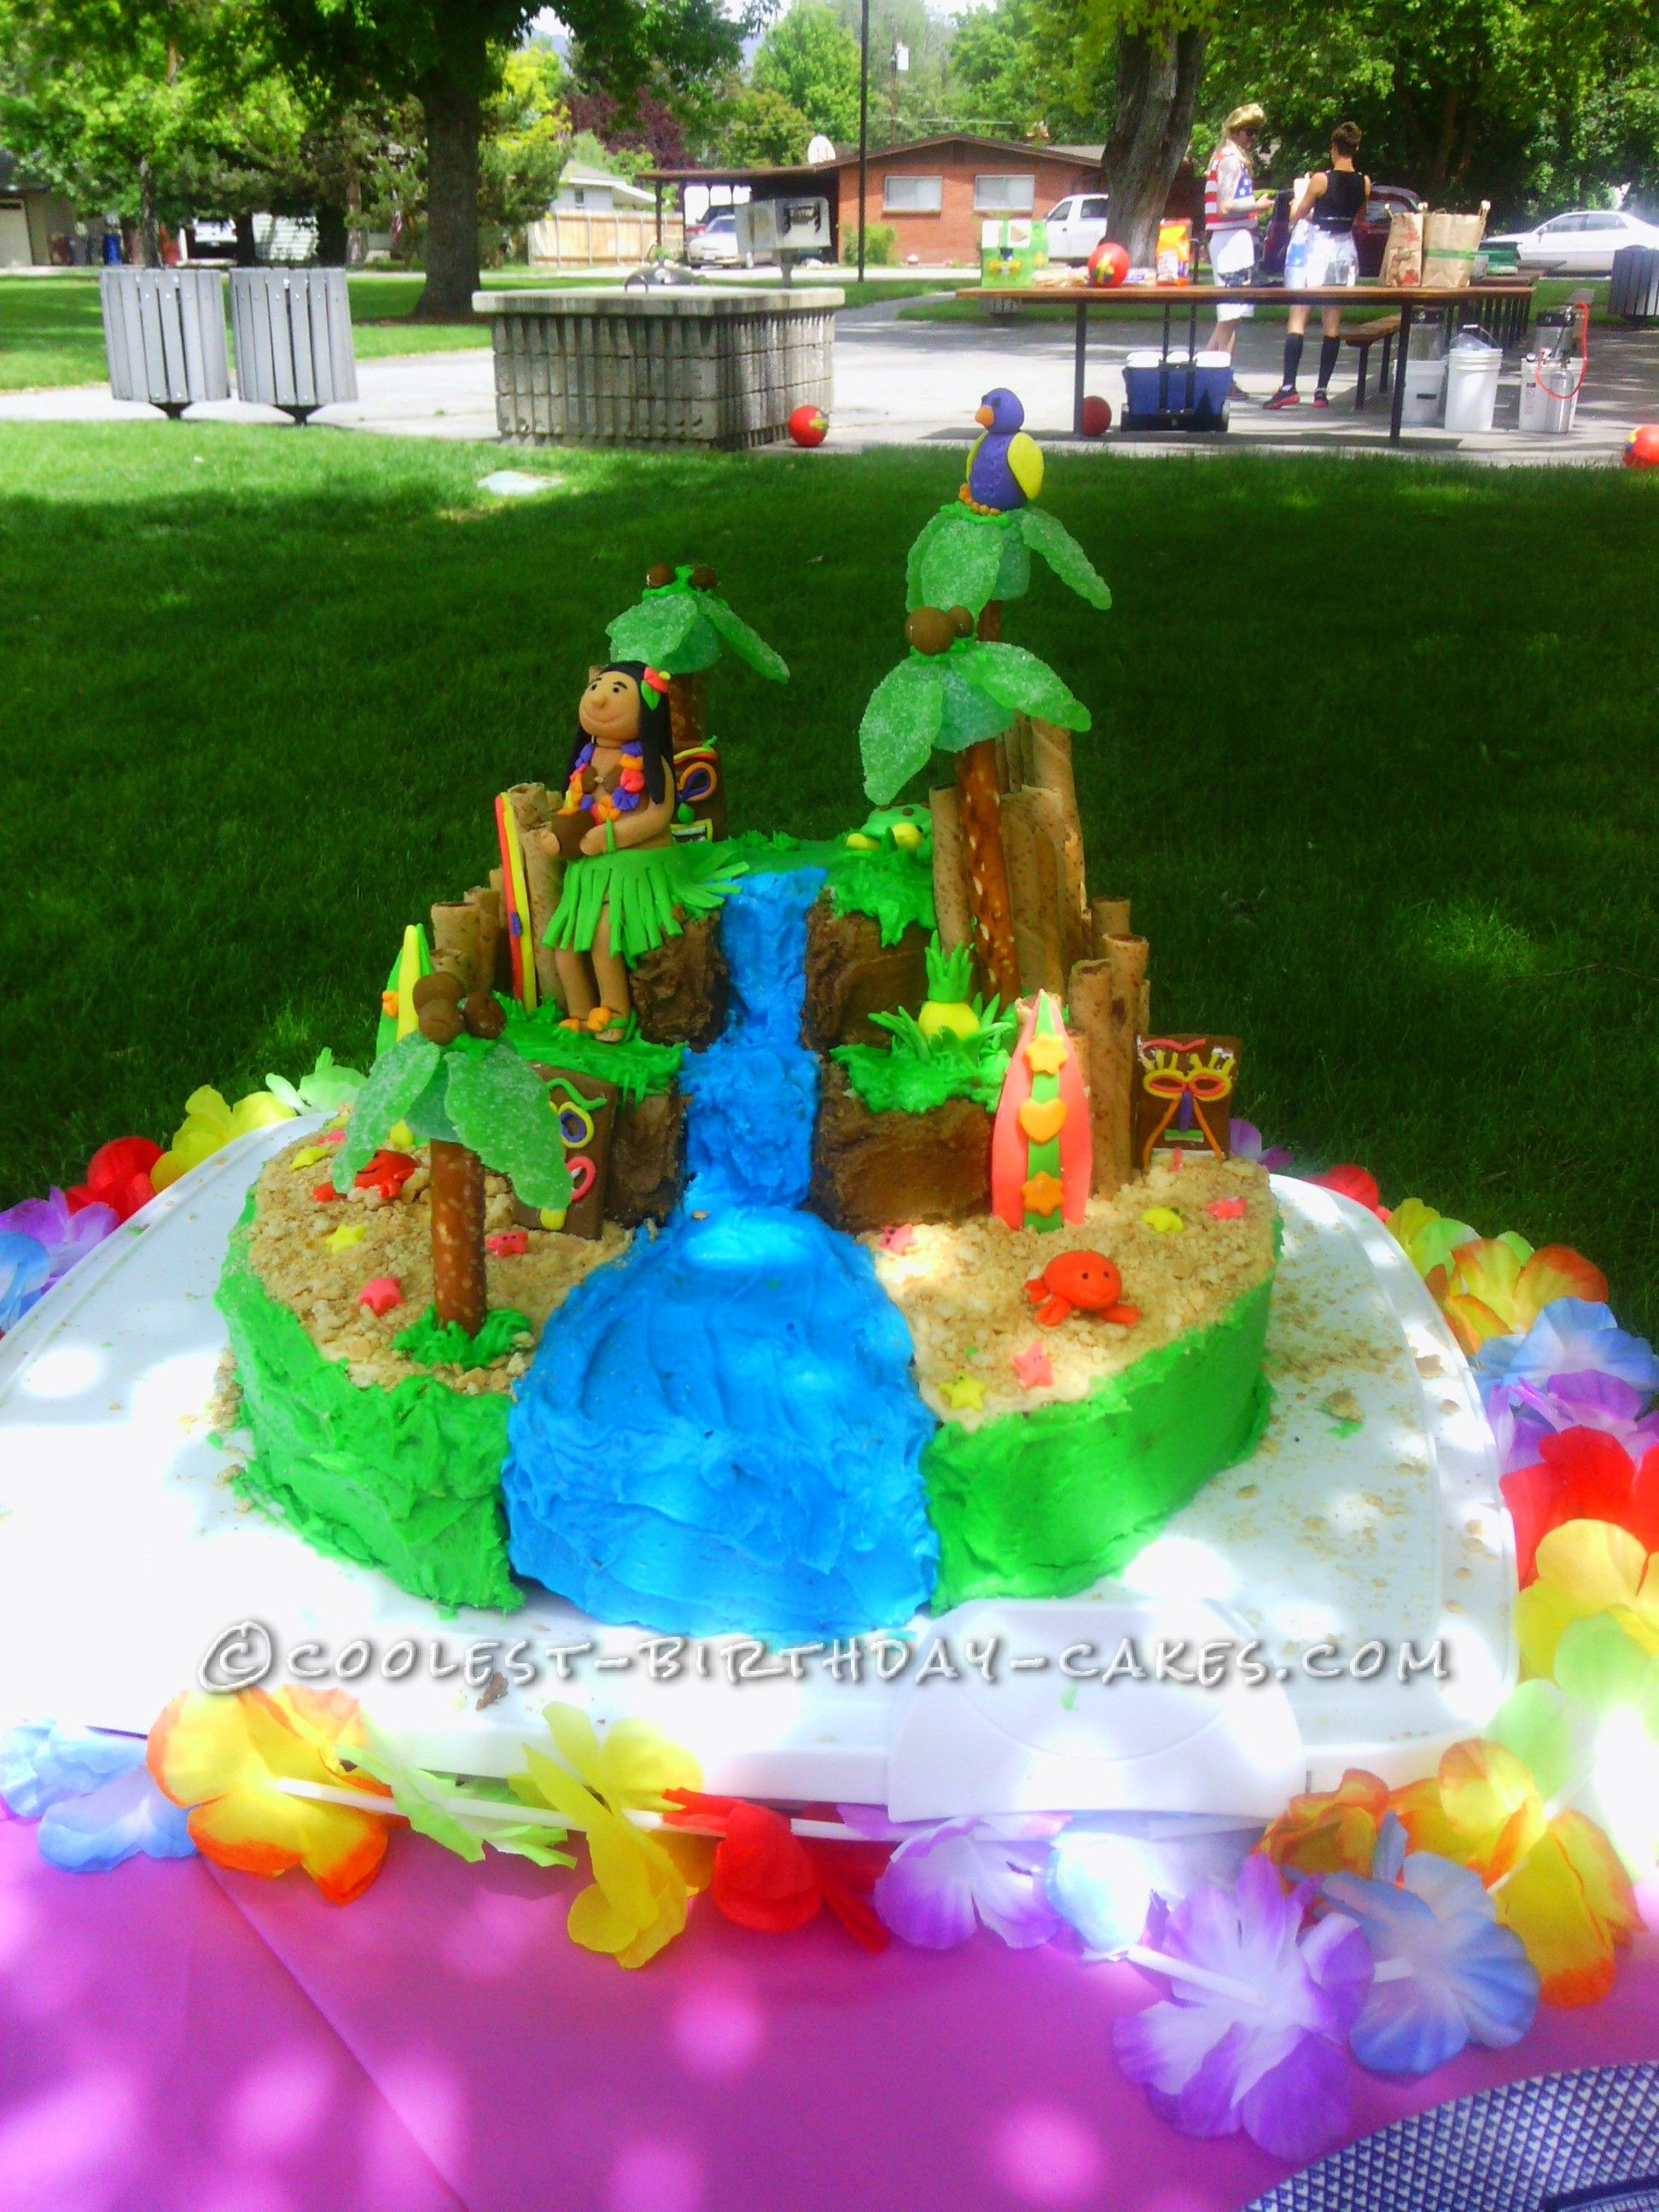 Beautiful Luau Cake For Graces 11th Birthday This Website Is The Pinterest Of Ideas